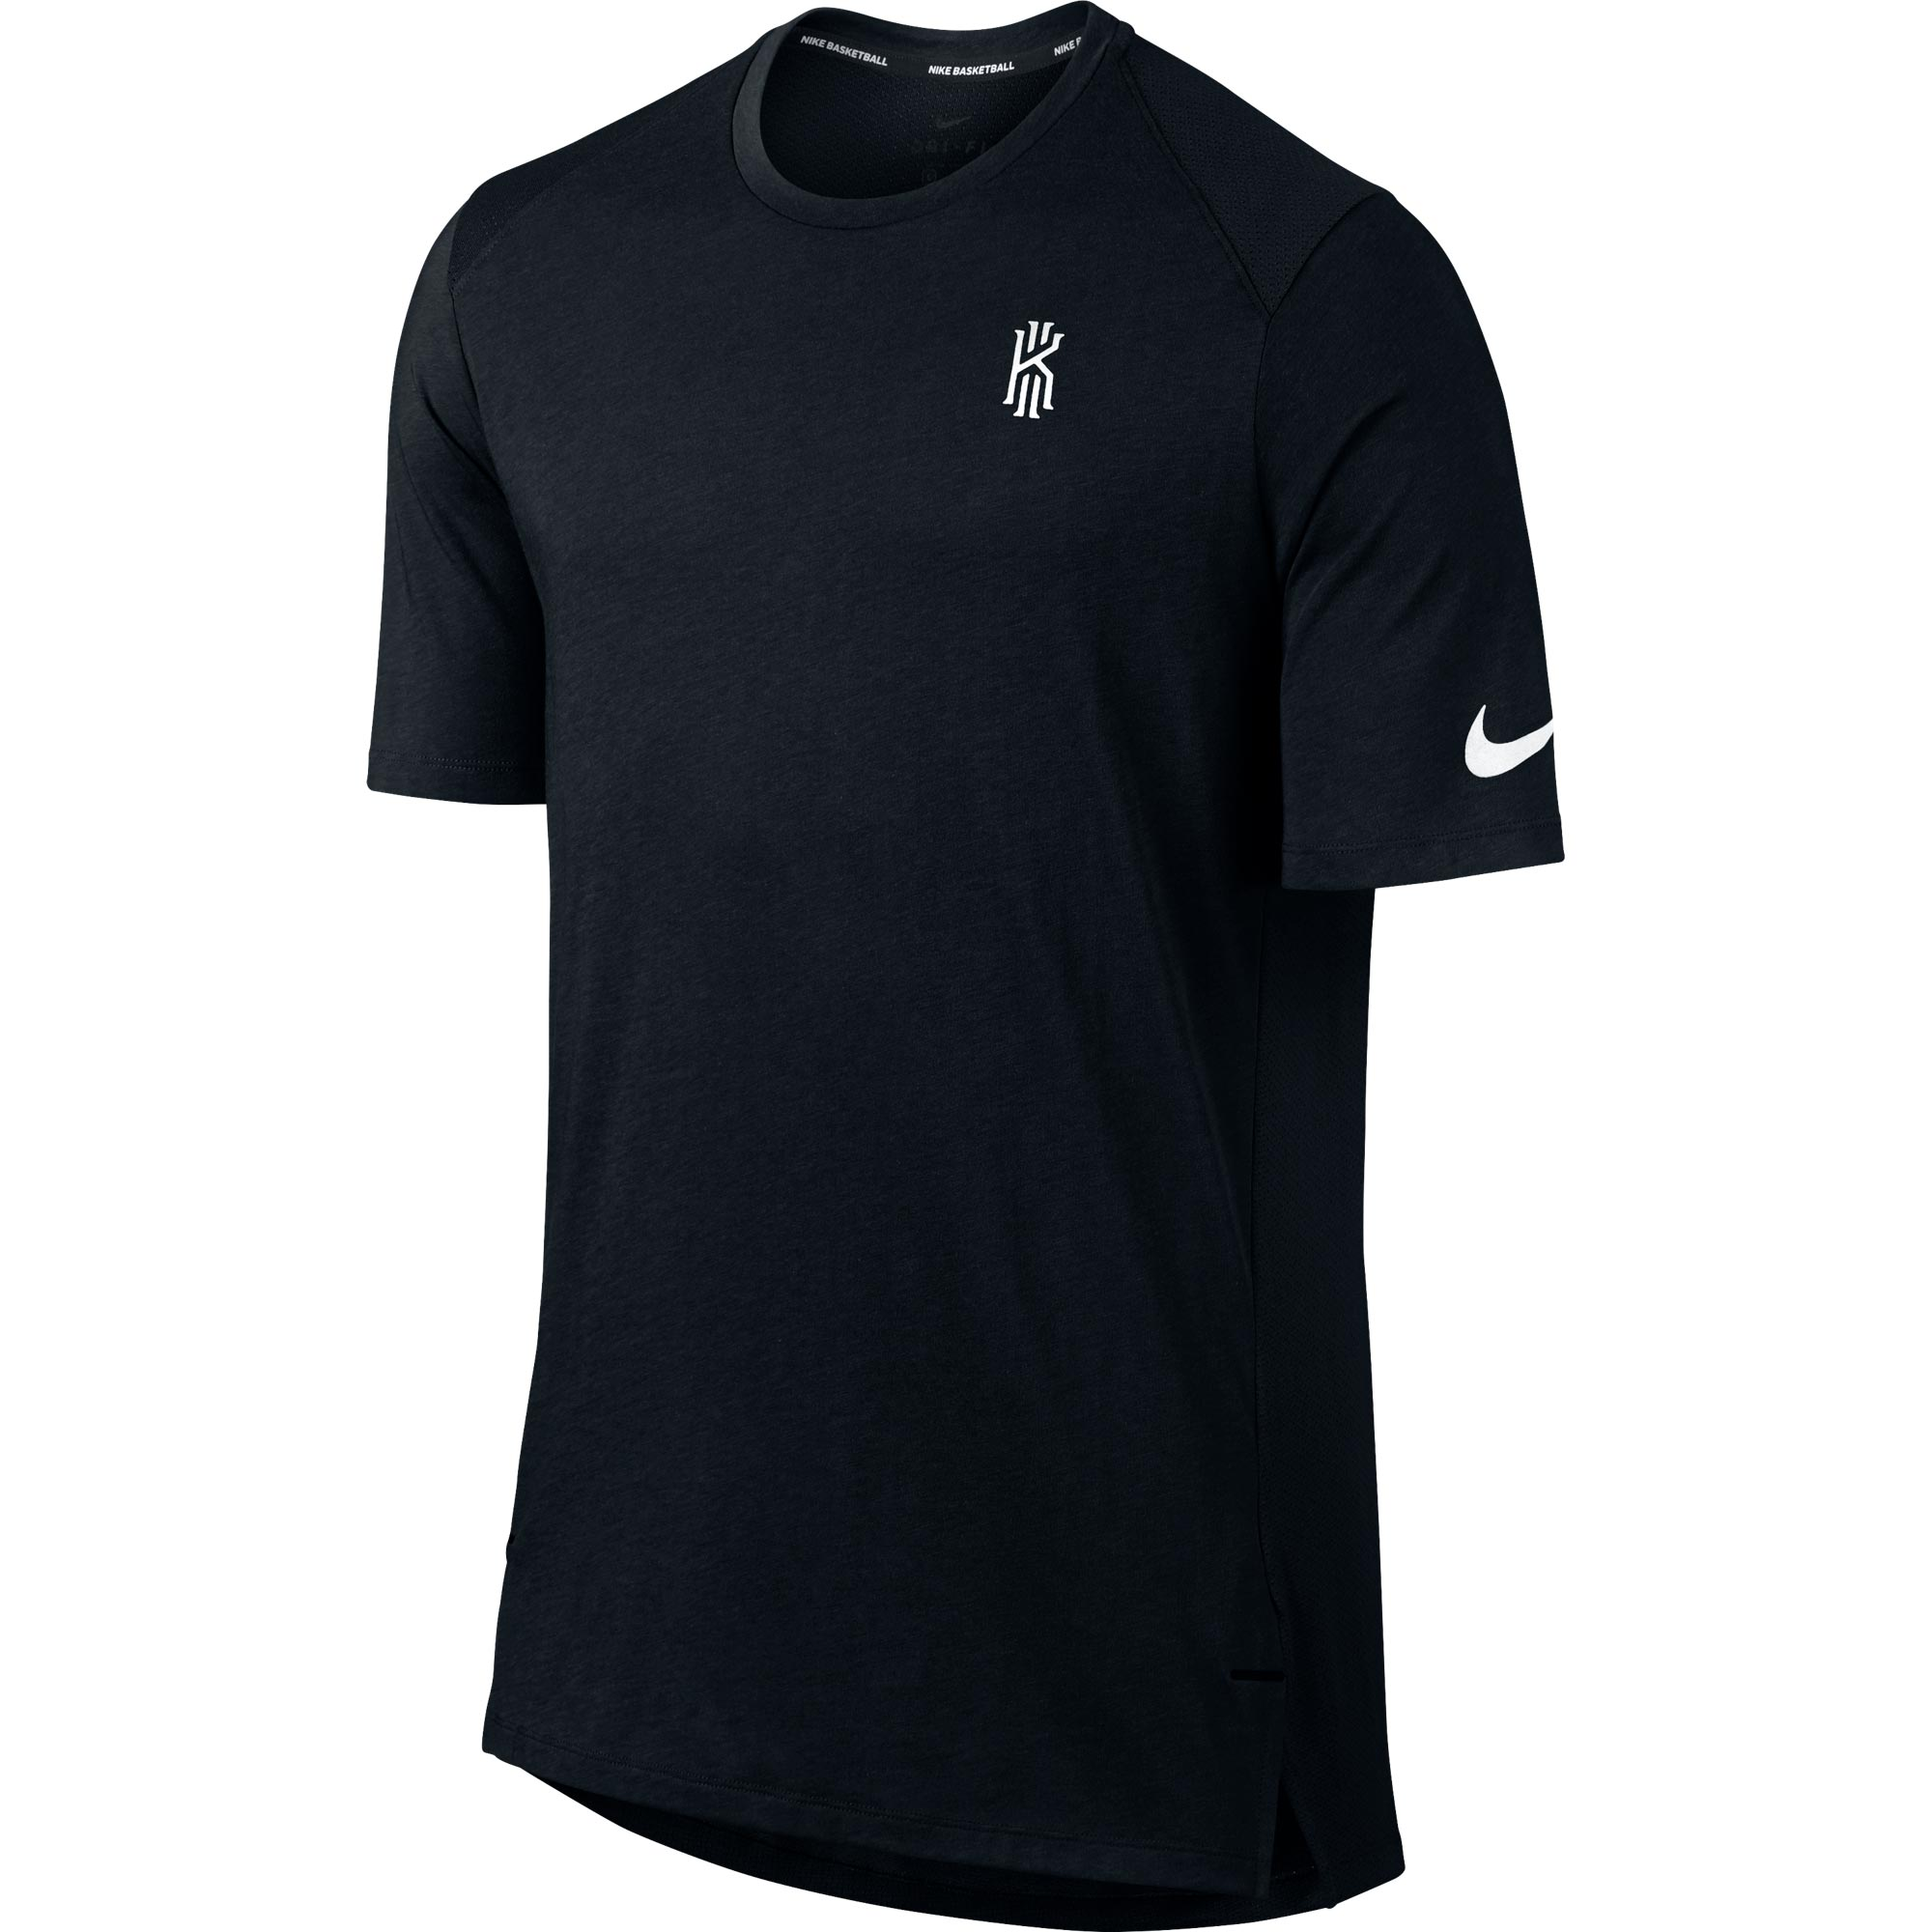 Nike Kyrie Dri-FIT T-Shirt - Black/Black - Mens